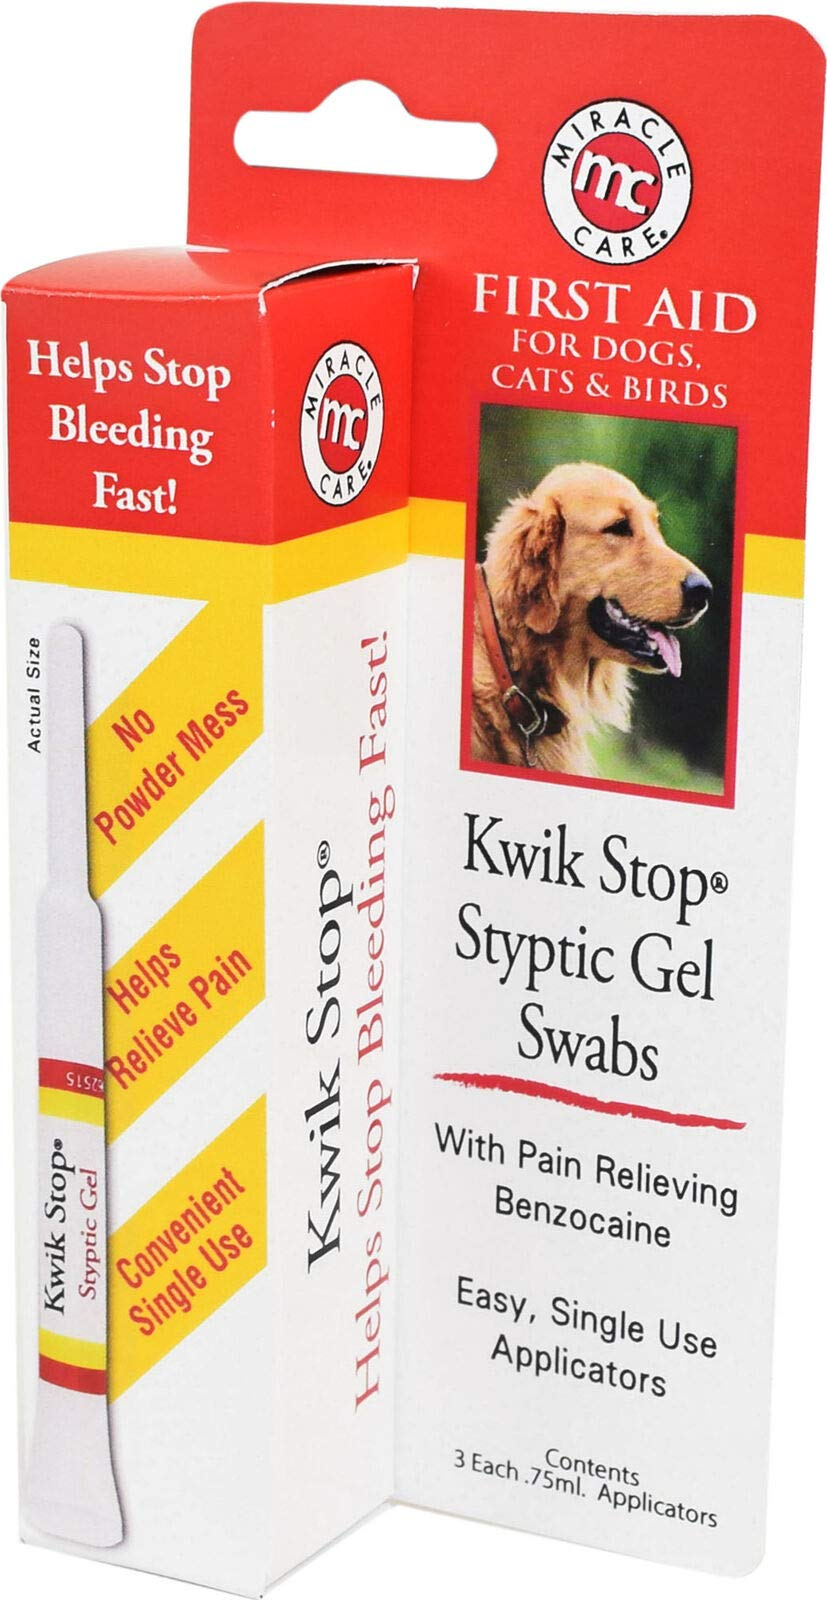 Miracle Care Kwik Stop Styptic Gel Swabs 75mL by Miracle Care